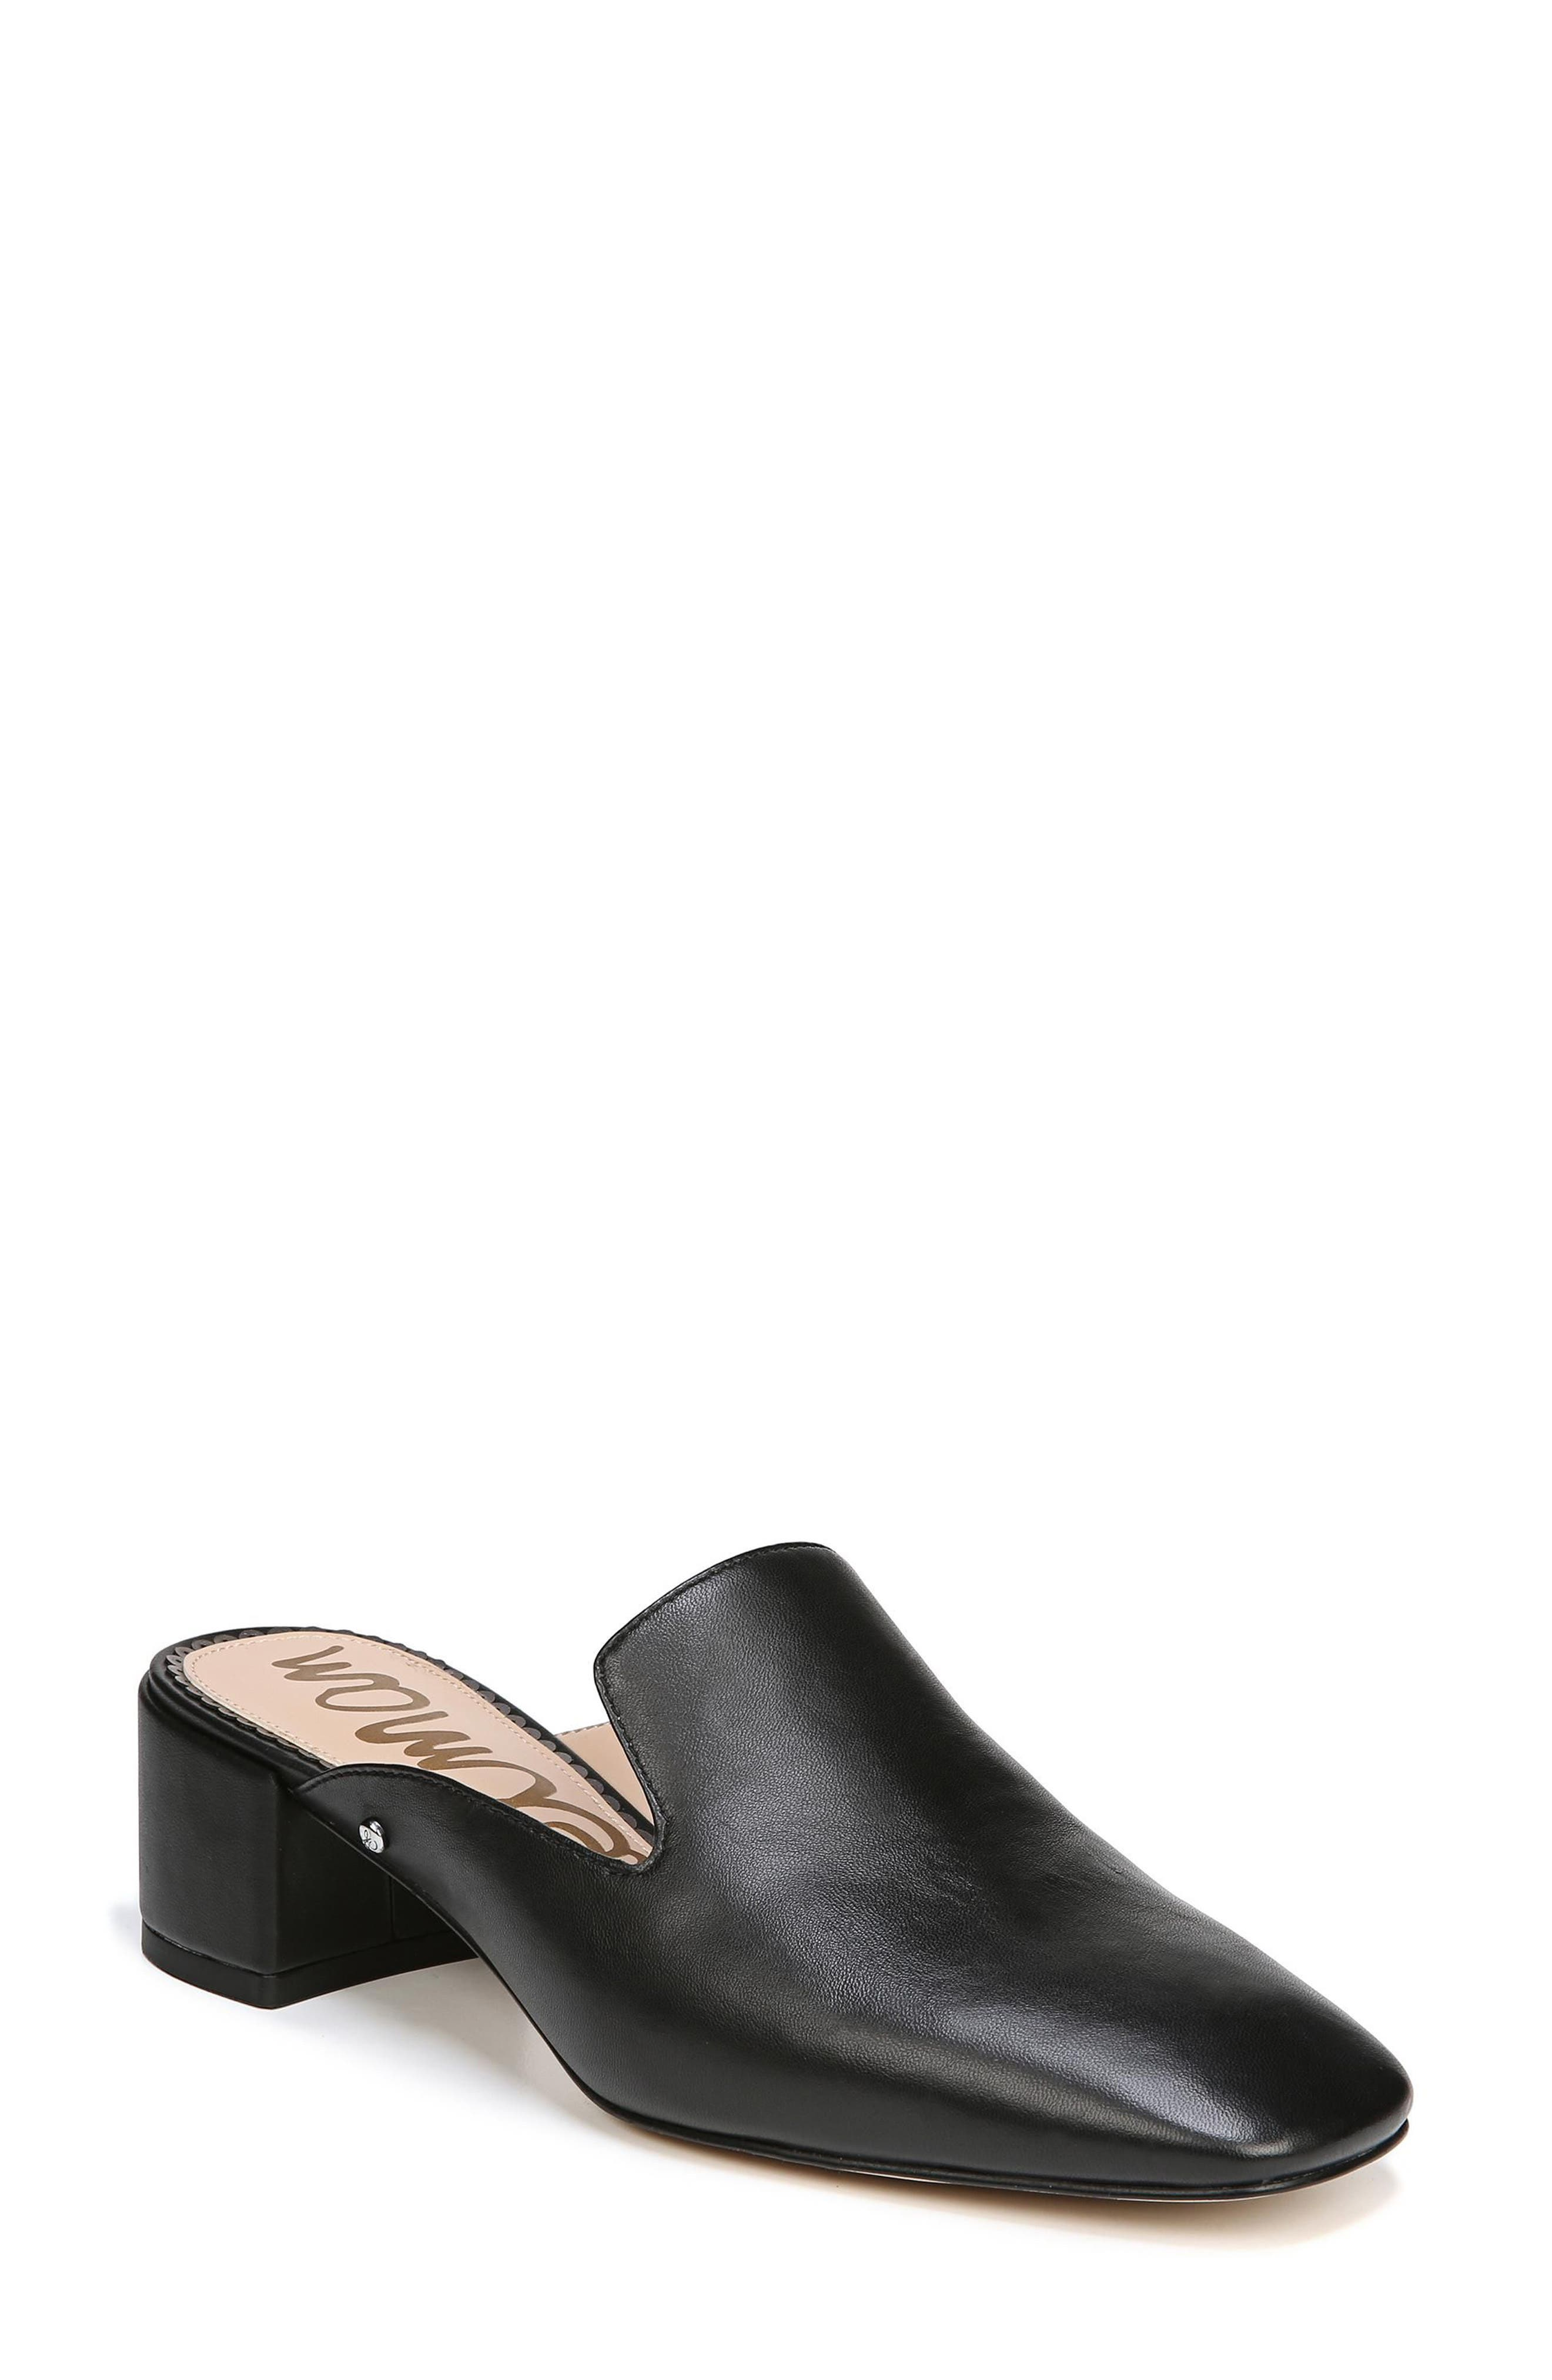 Adair Loafer Mule,                             Main thumbnail 1, color,                             BLACK LEATHER